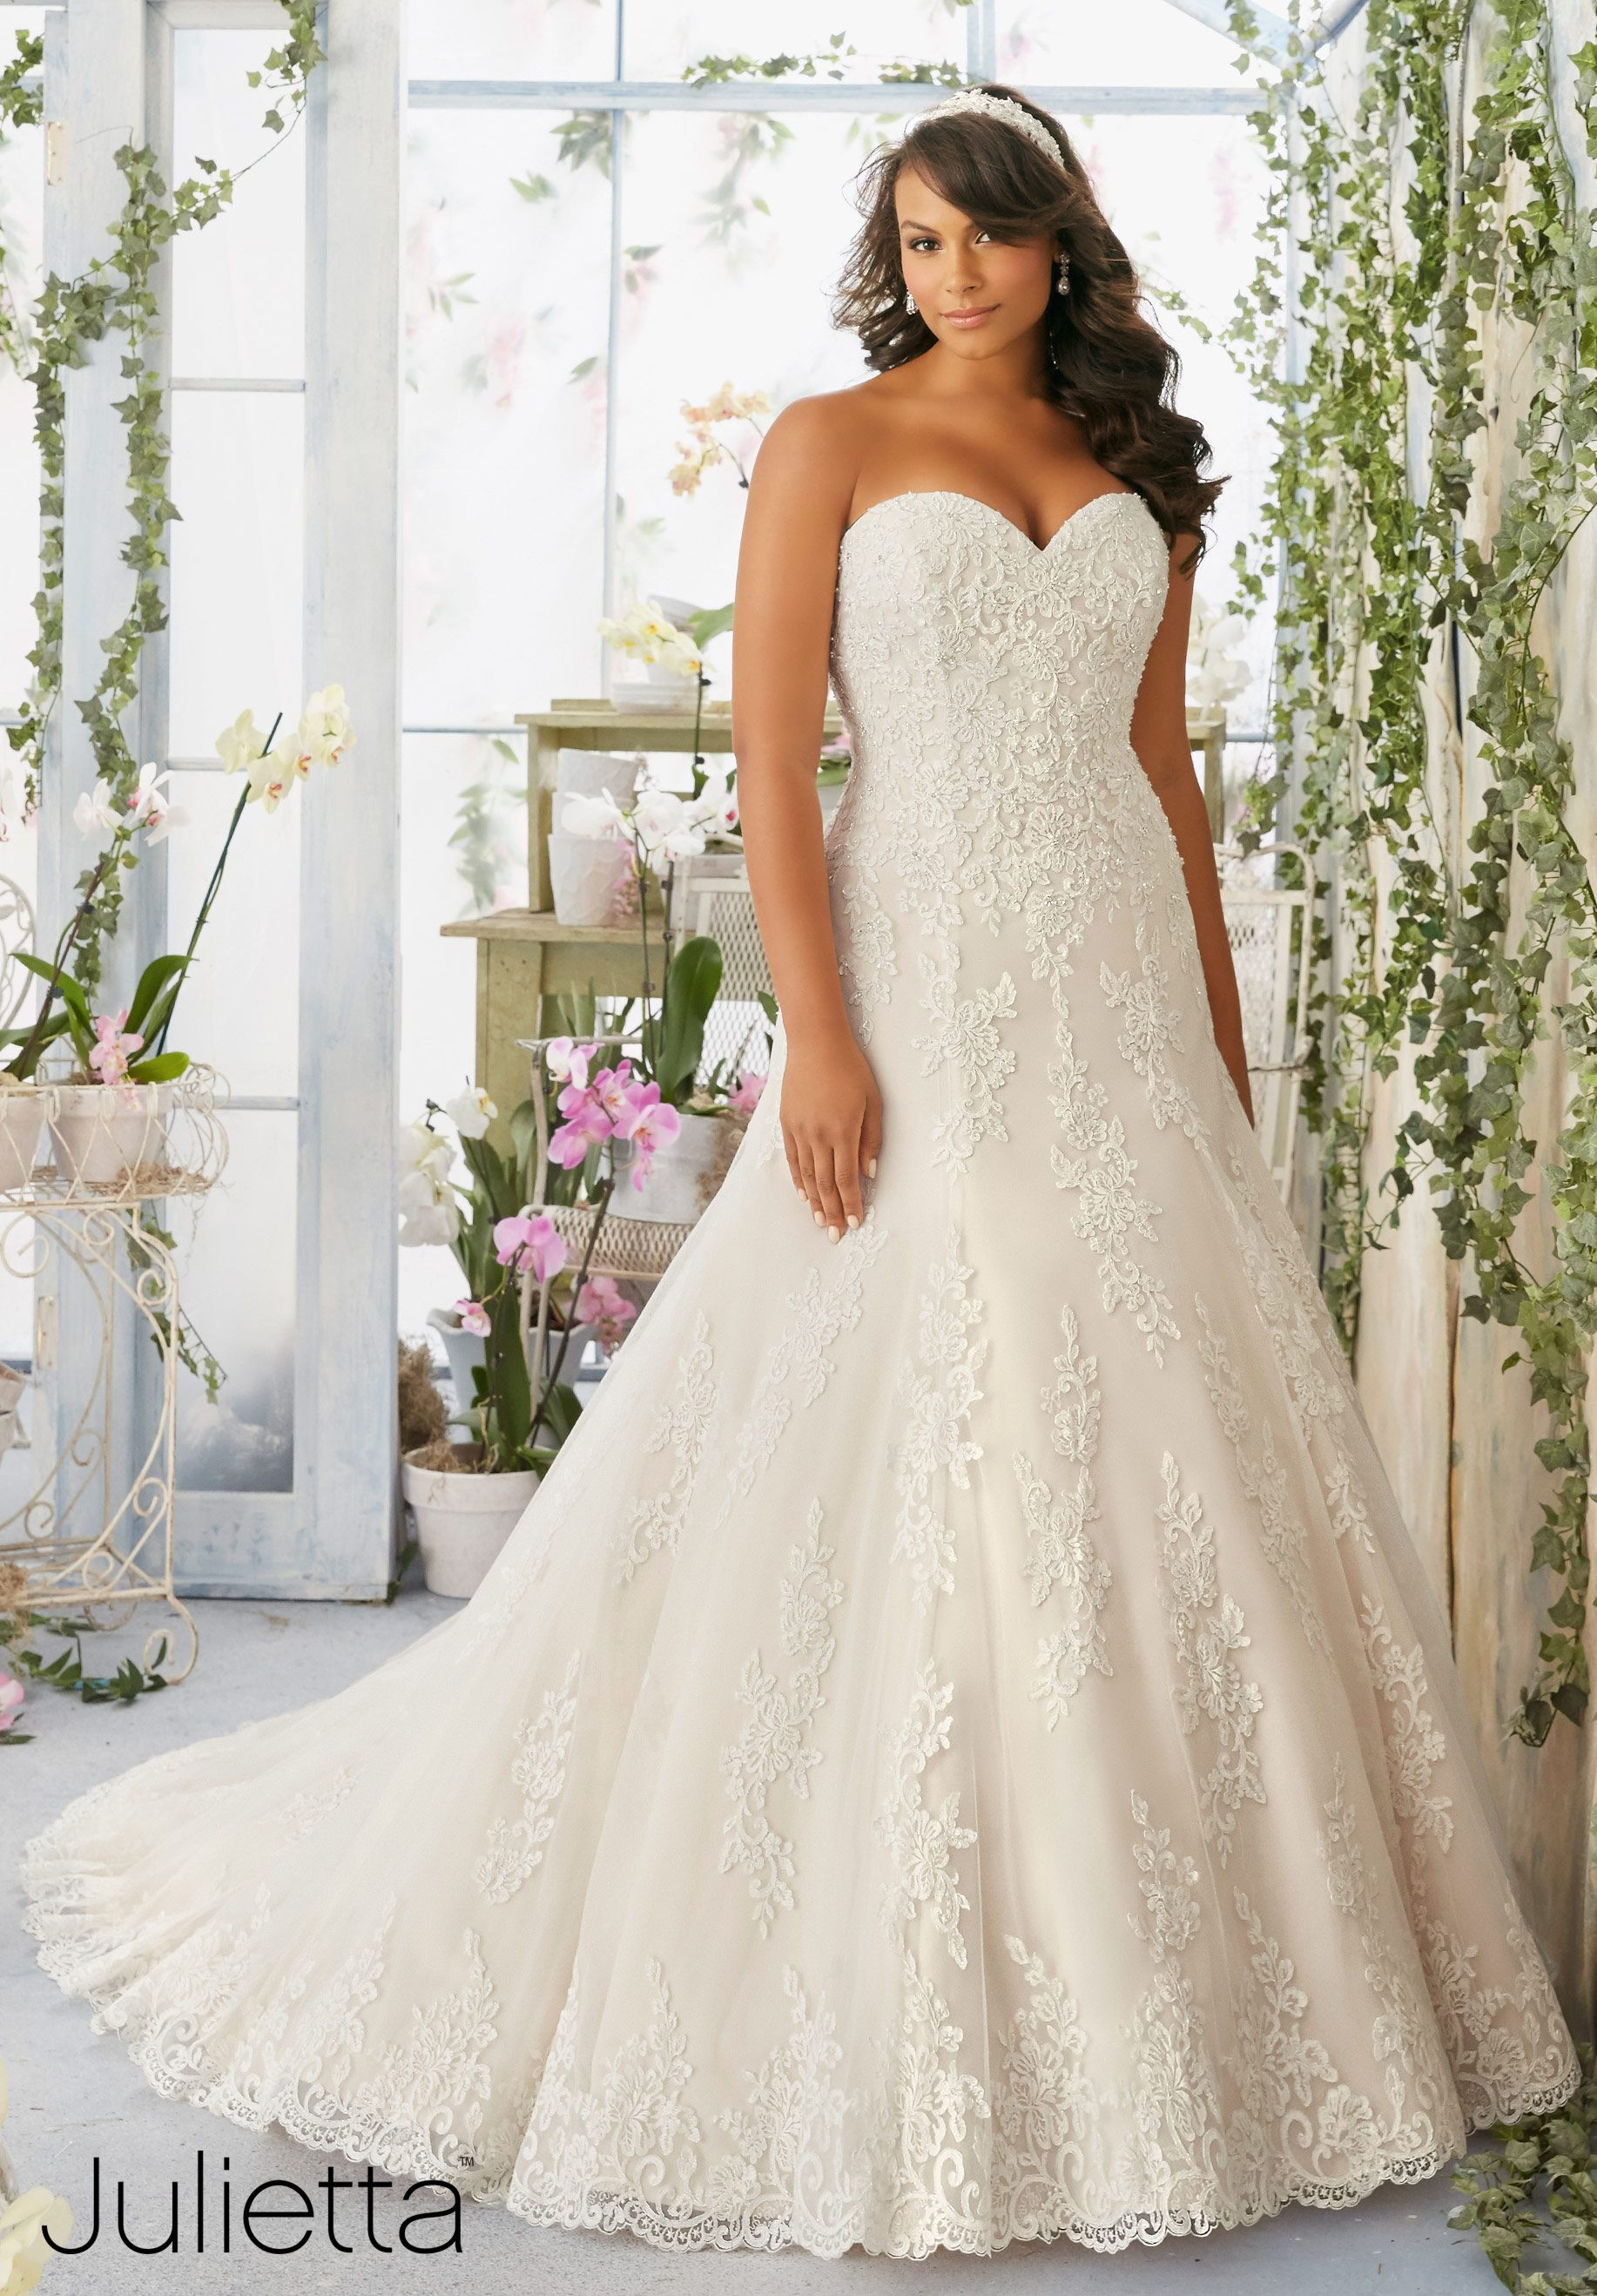 Vintage pearl bridal blog real brides news amp updates wedding -  Plus Size Wedding Gown Of The Day New Julietta Collection By Mori Lee